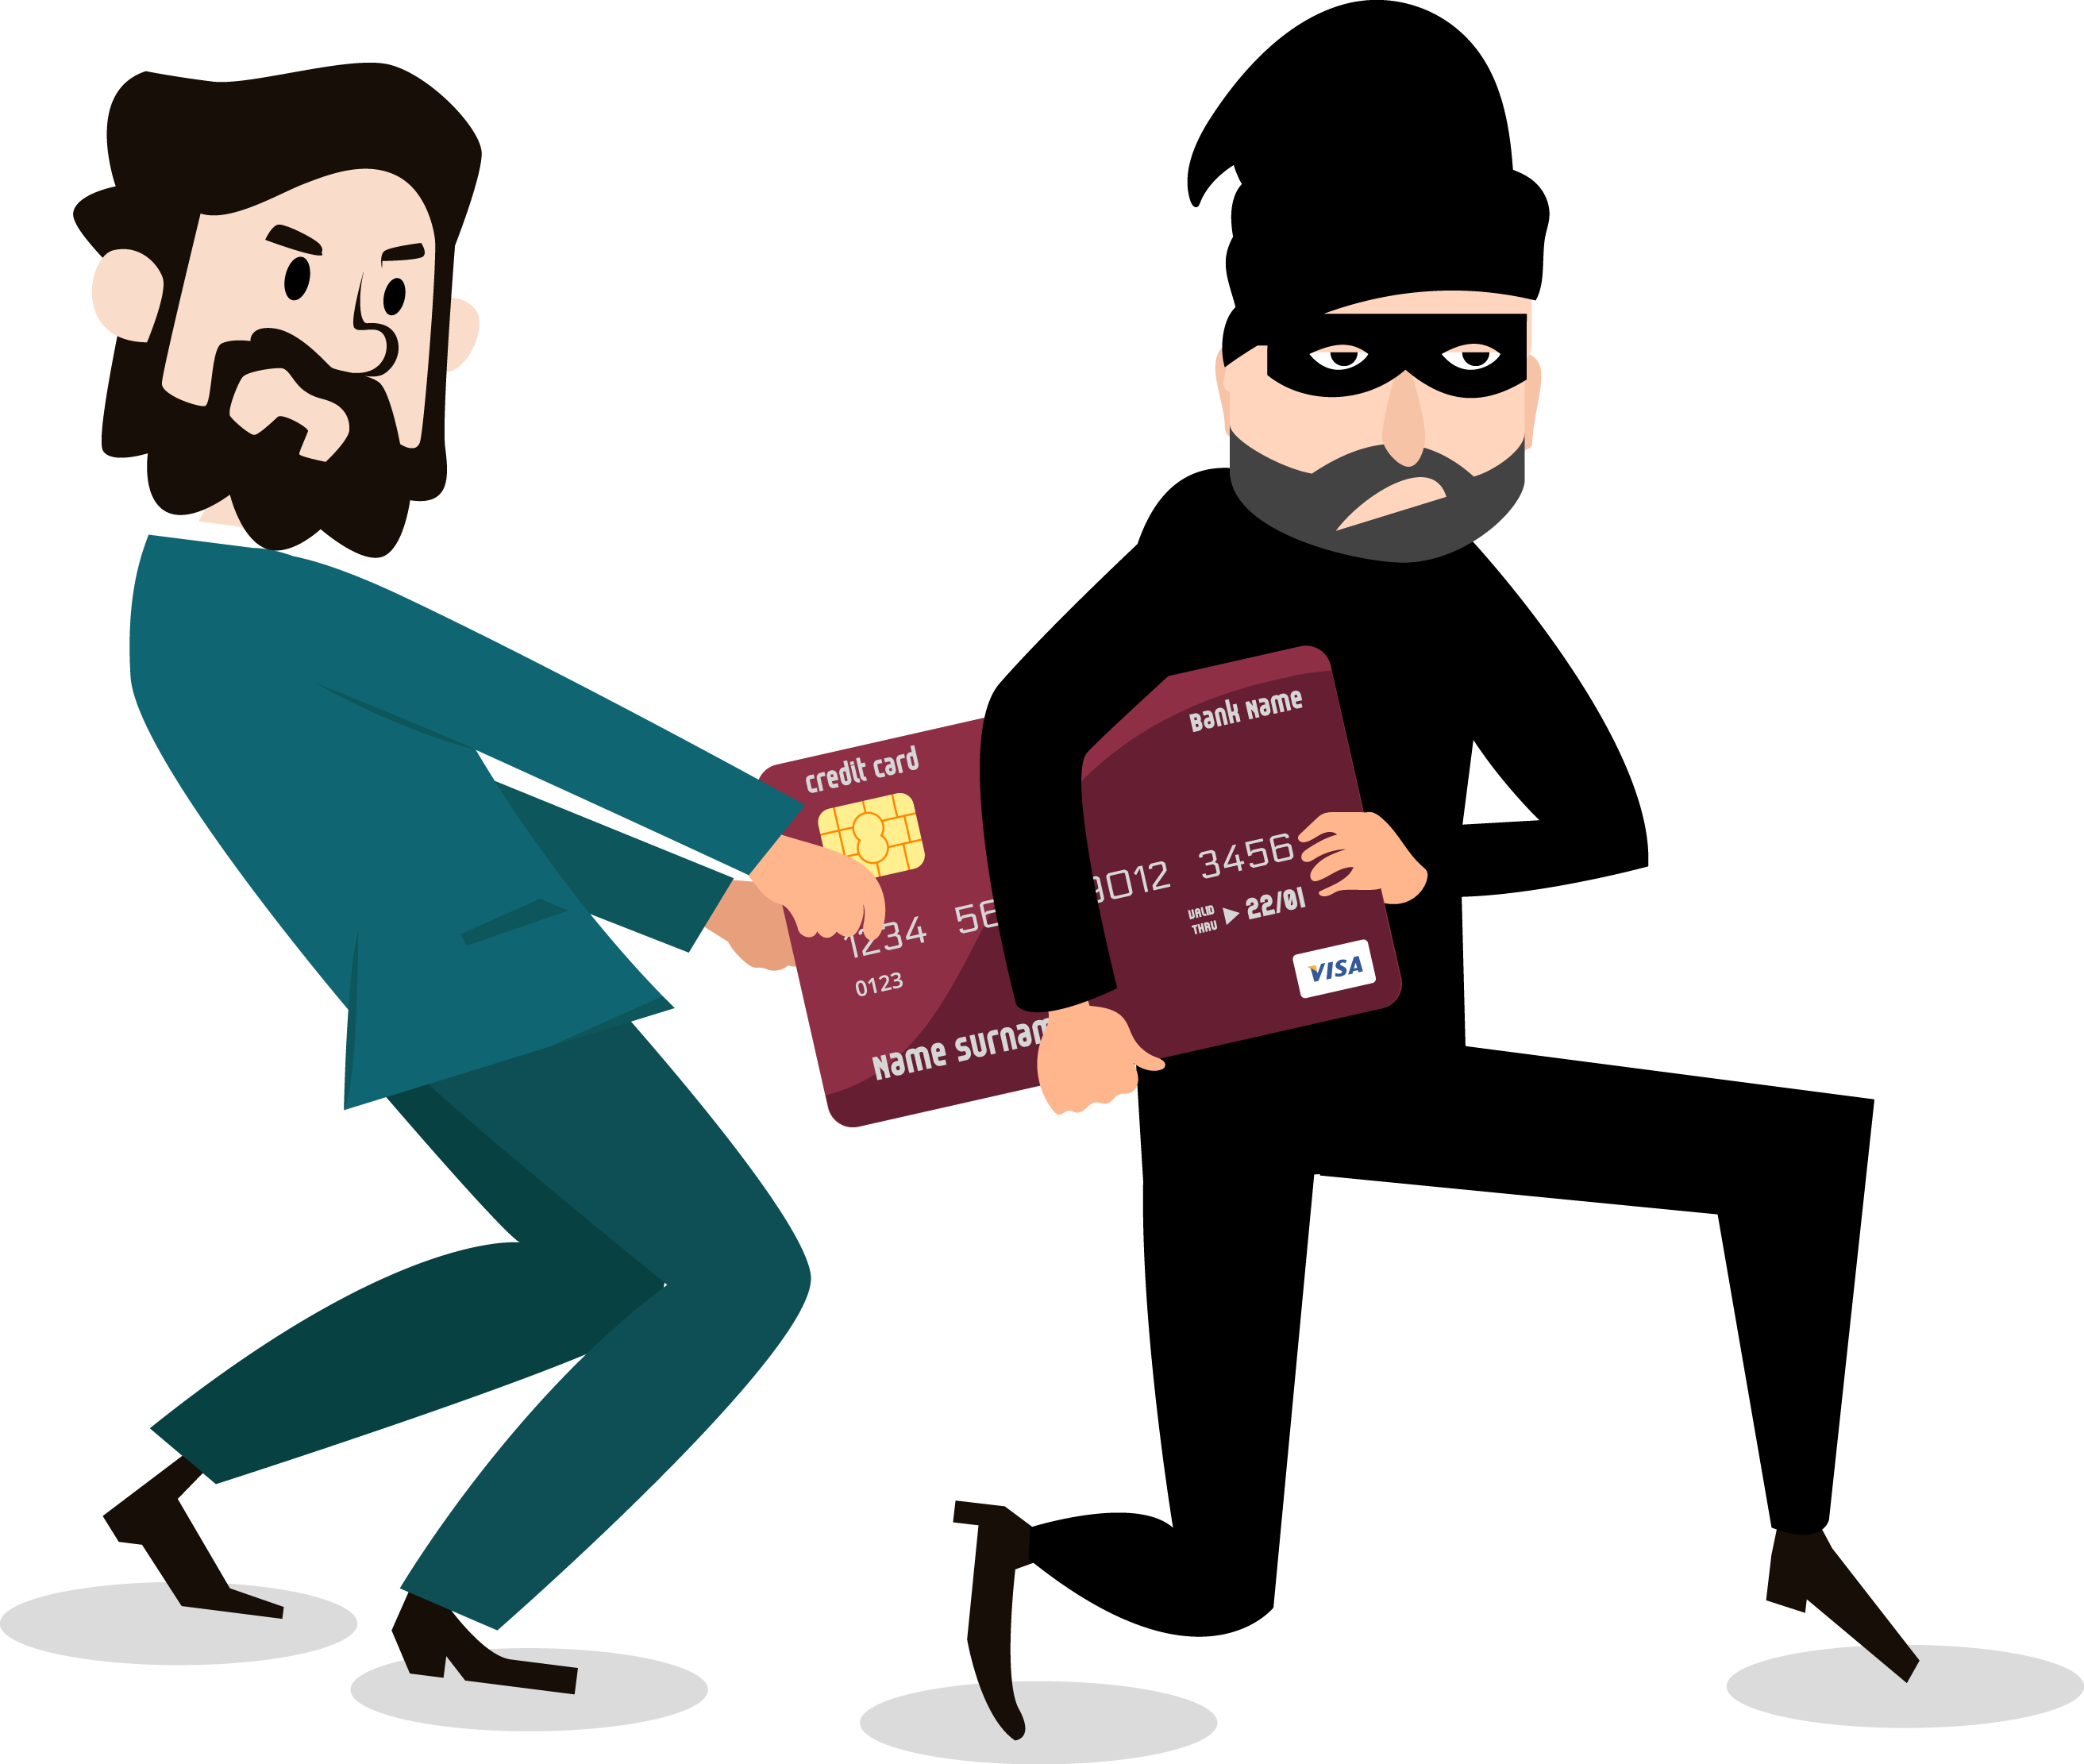 Cartoon robber clipart picture free library Cartoon Robbery Graphic design - Thieves rob the bank card 2625*2222 ... picture free library